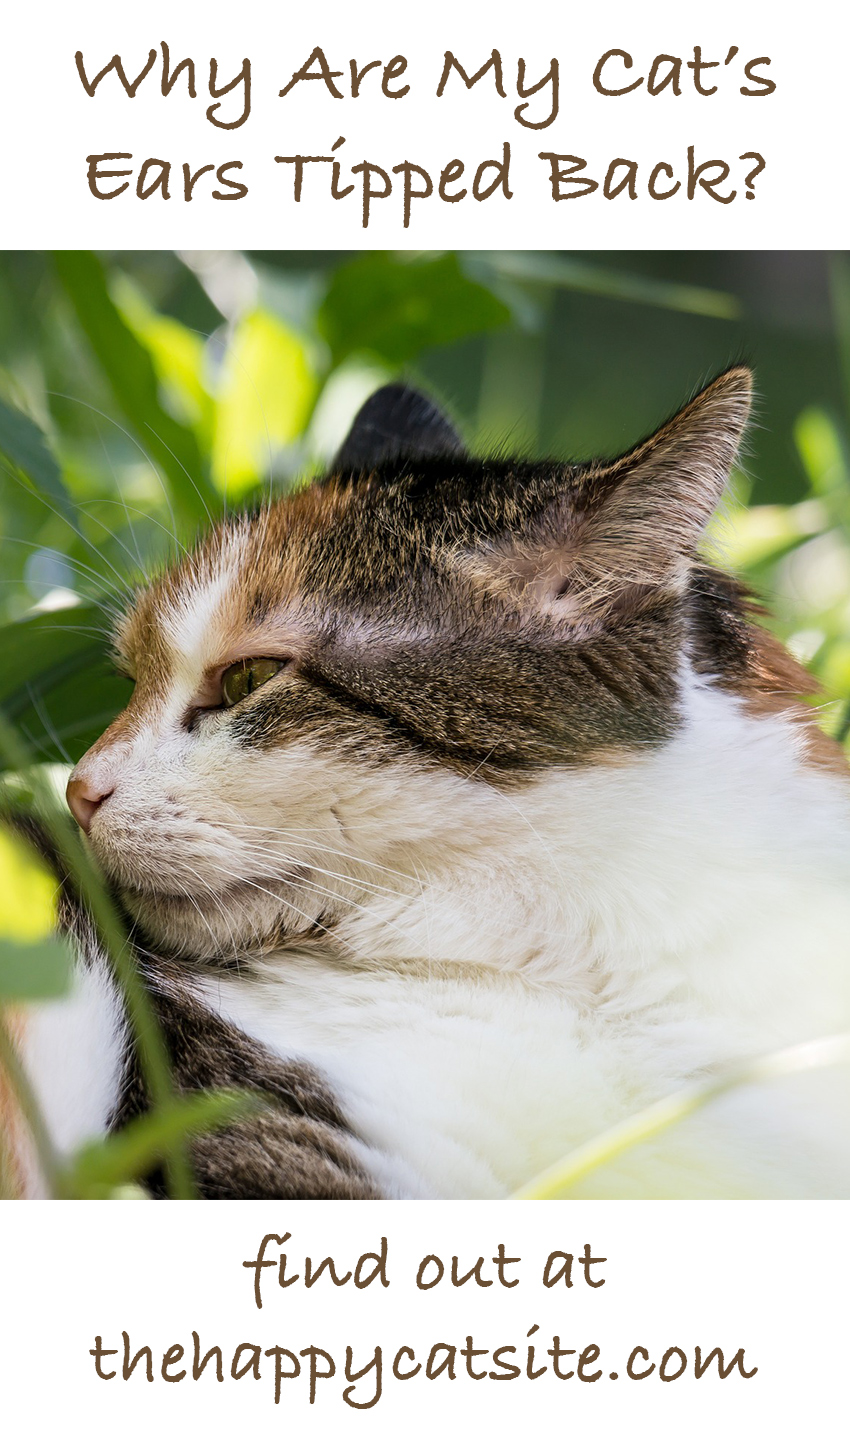 Cat Ears Down? Let's find out what it means when your cat flattens his ears.